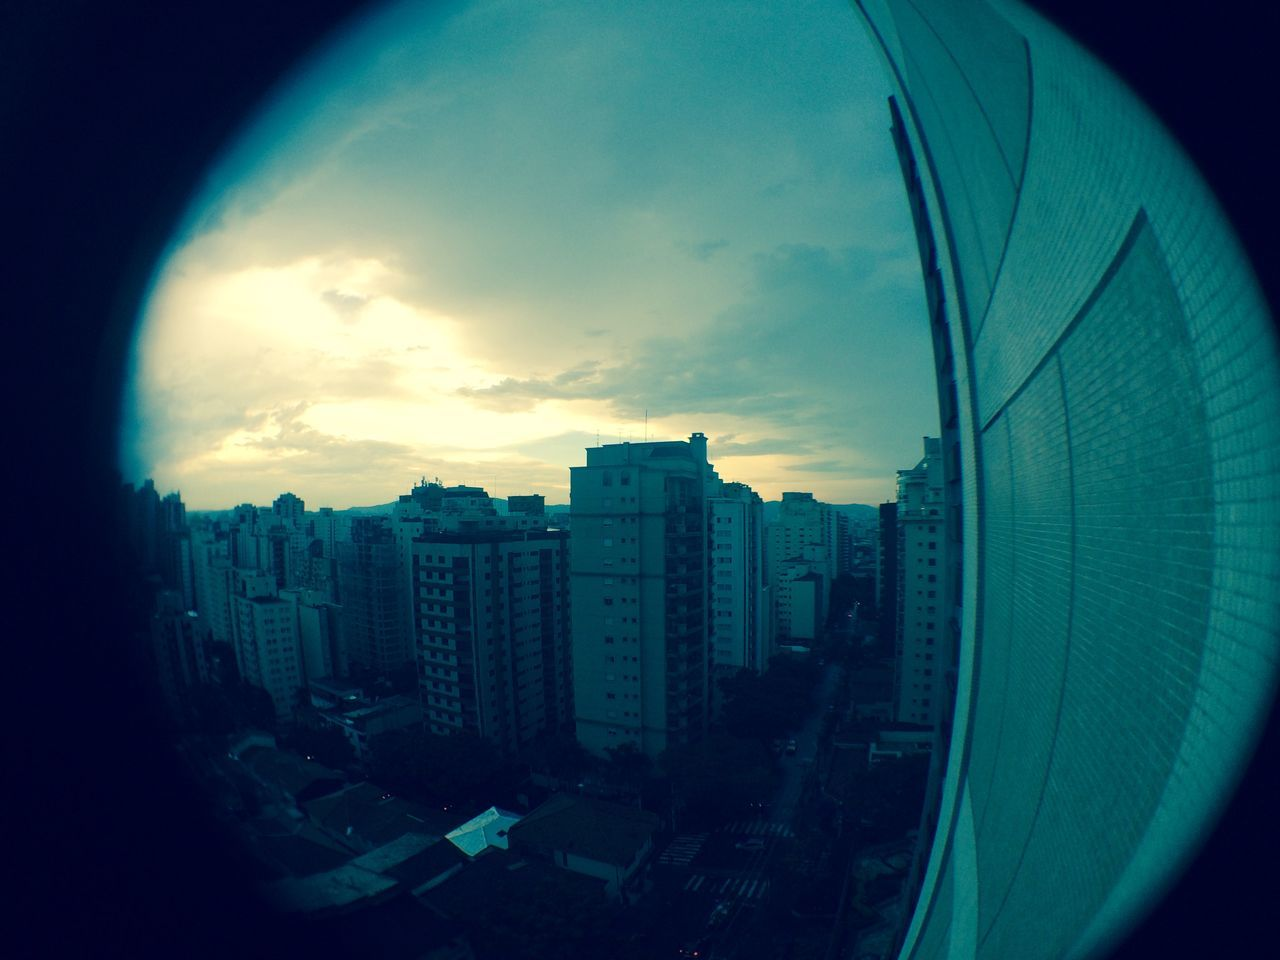 architecture, skyscraper, building exterior, city, cityscape, built structure, modern, no people, sky, tall, fish-eye lens, outdoors, urban skyline, day, close-up